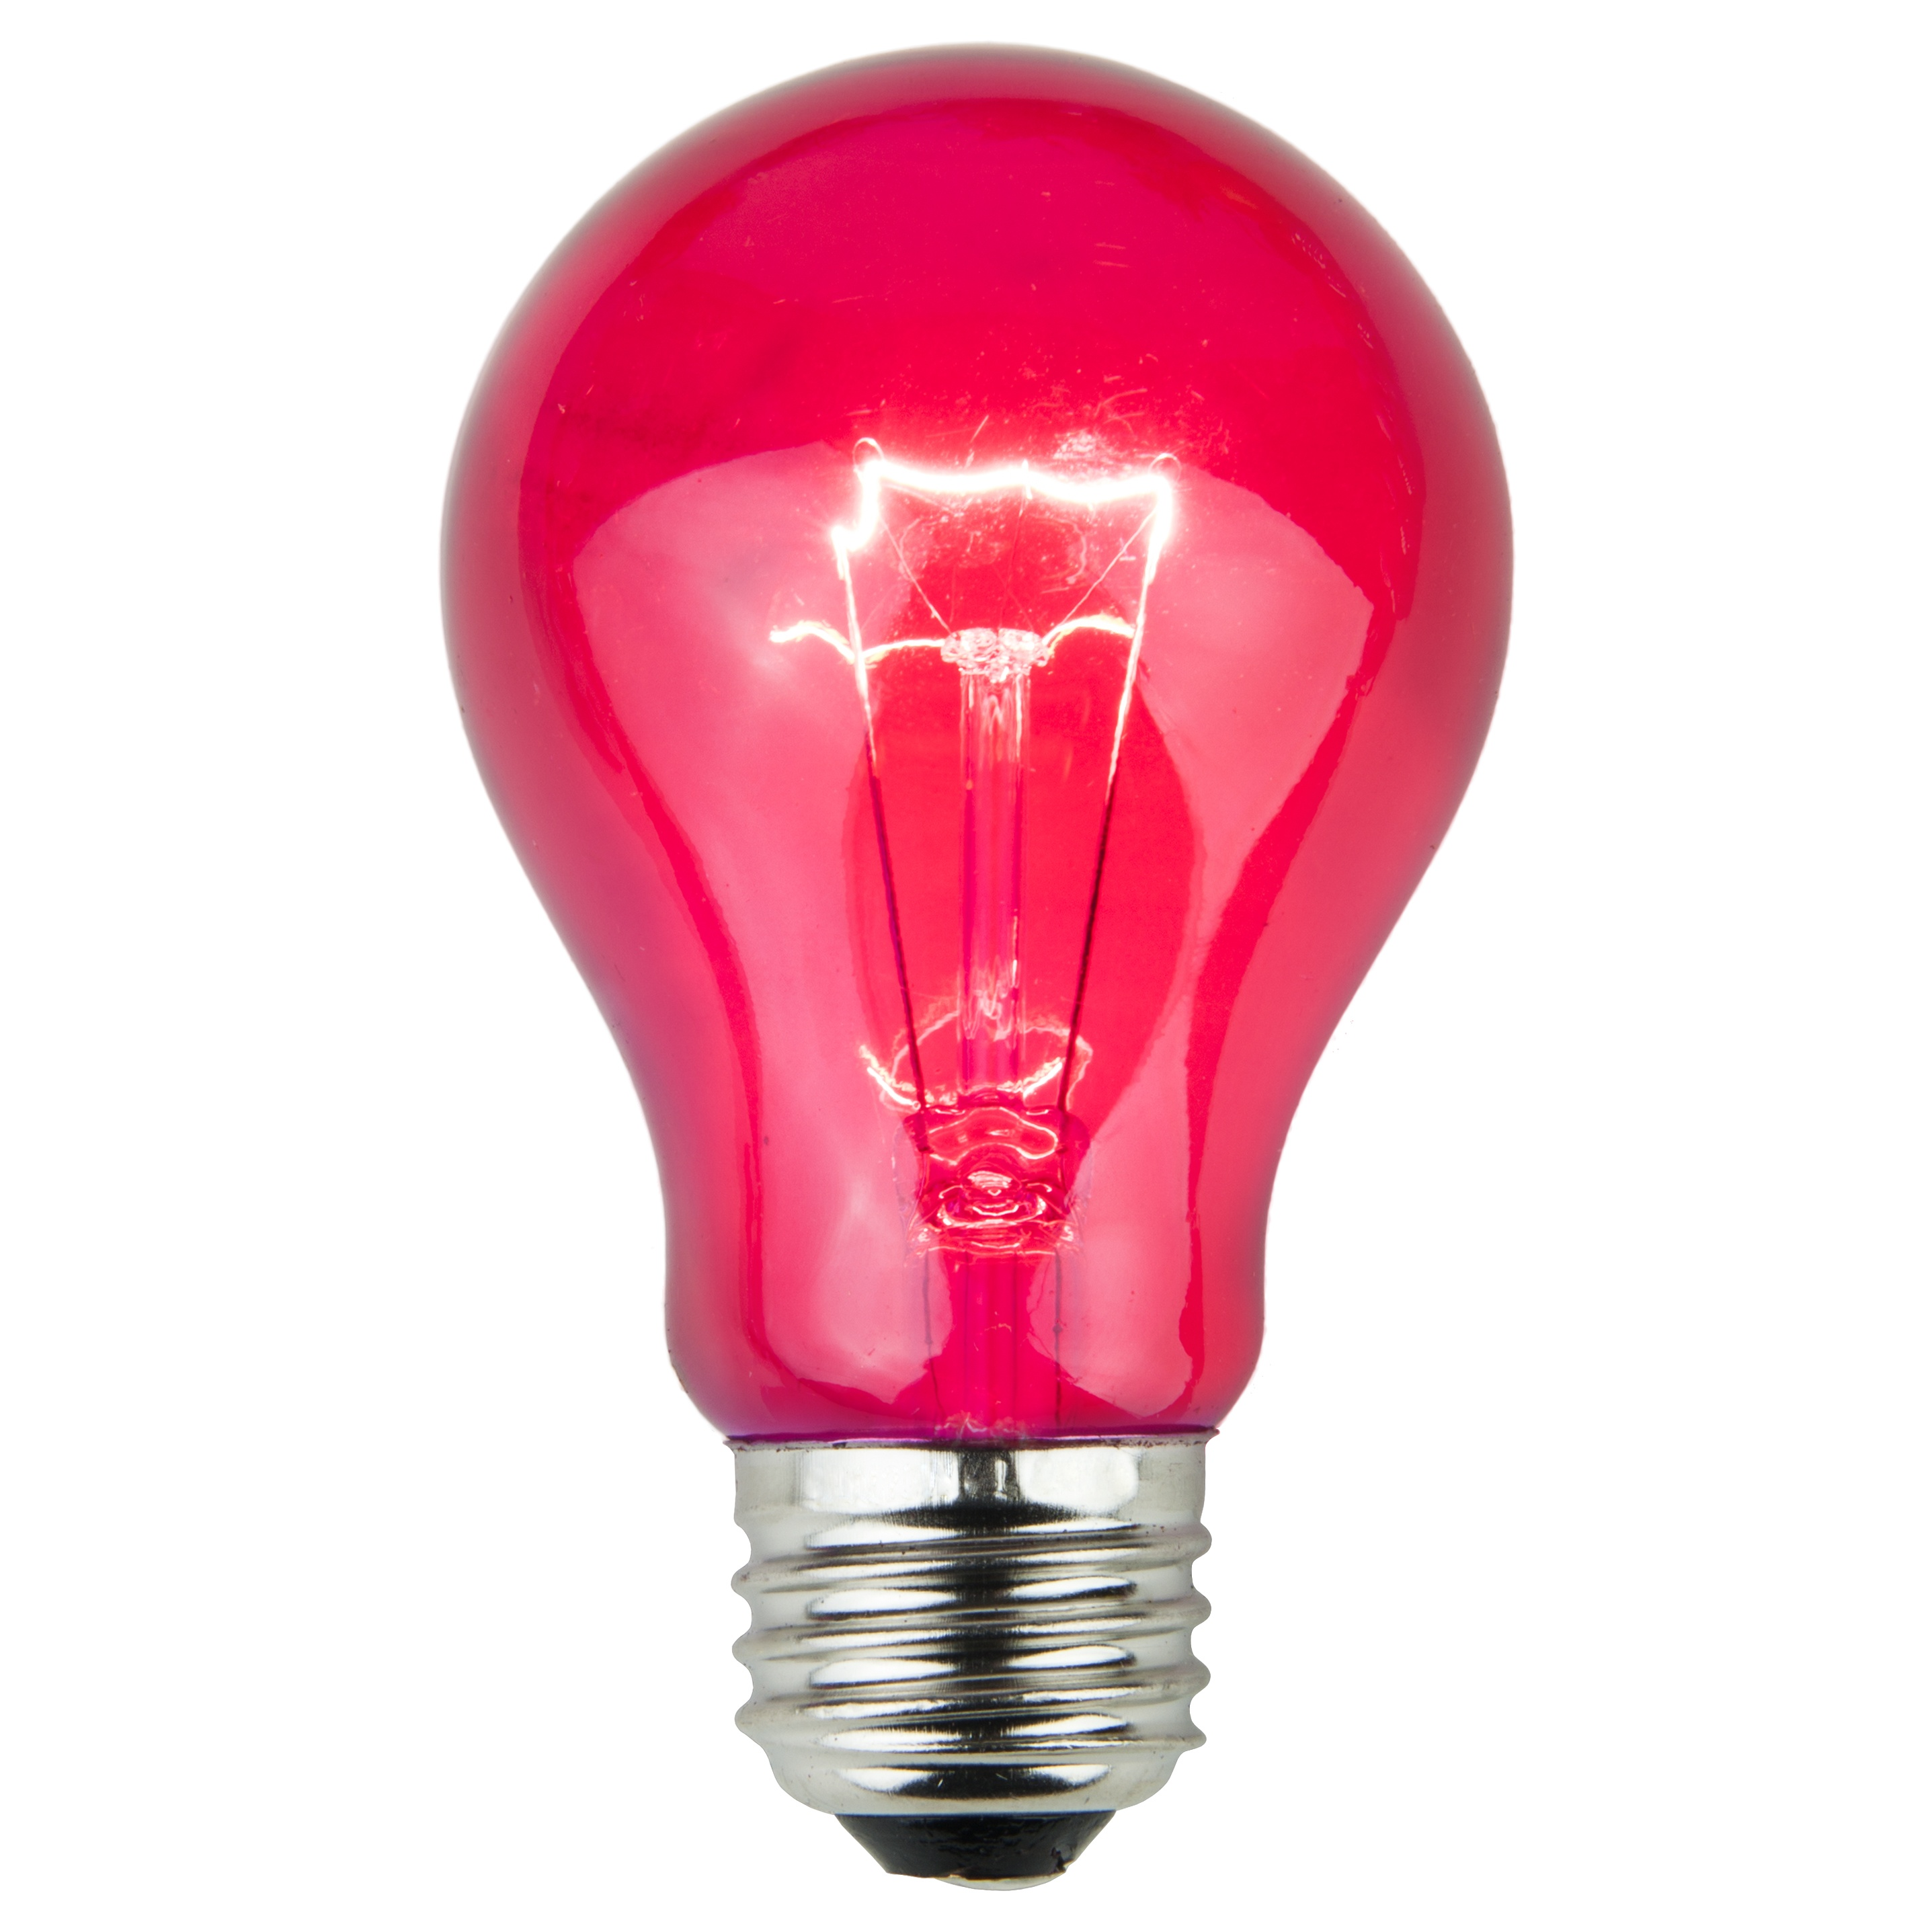 Replacement Incandescent Light Bulbs